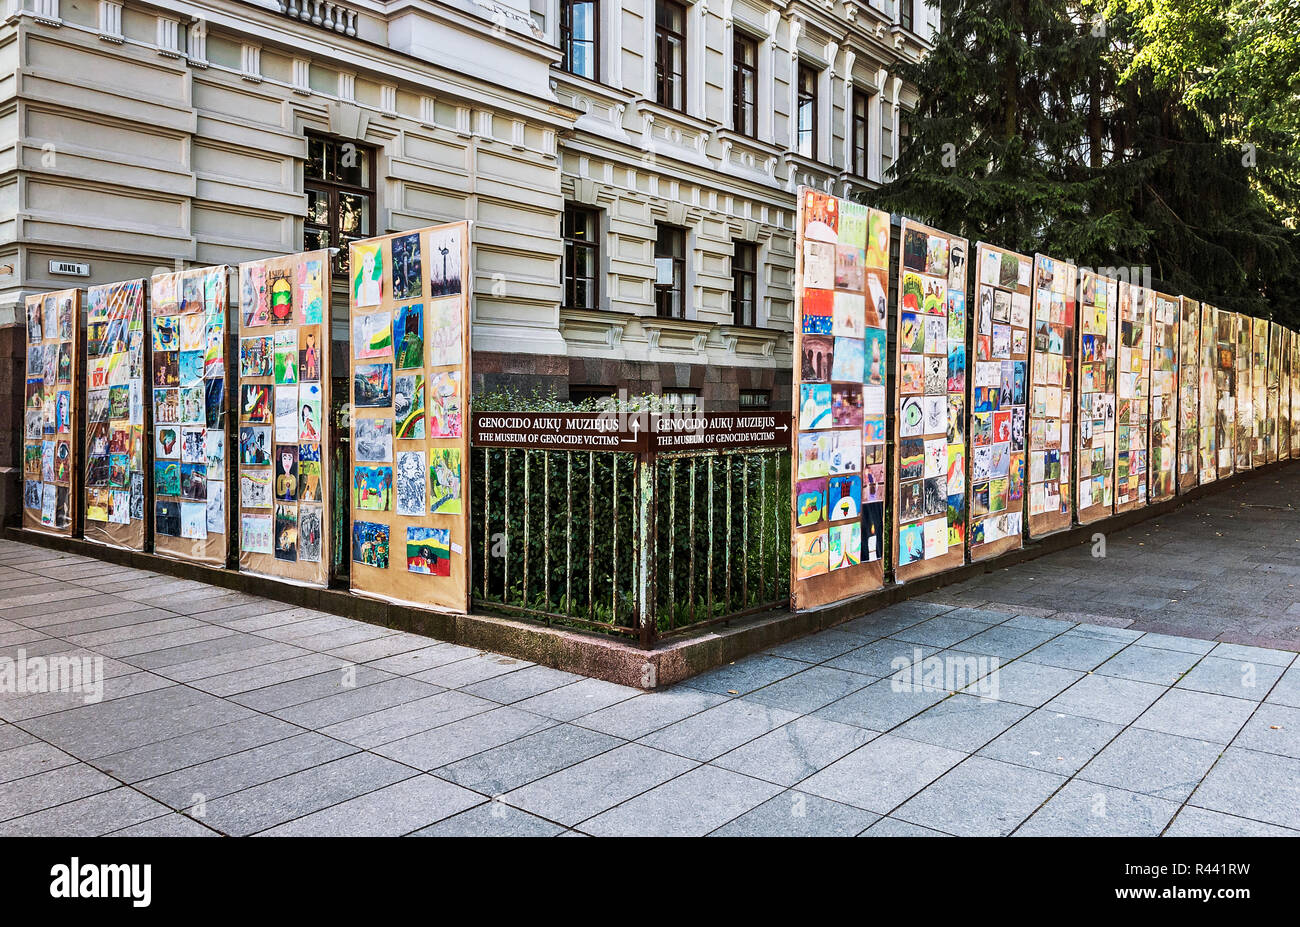 Children paintings about lithuanian genocide, Vilnius, Lithuania - Stock Image